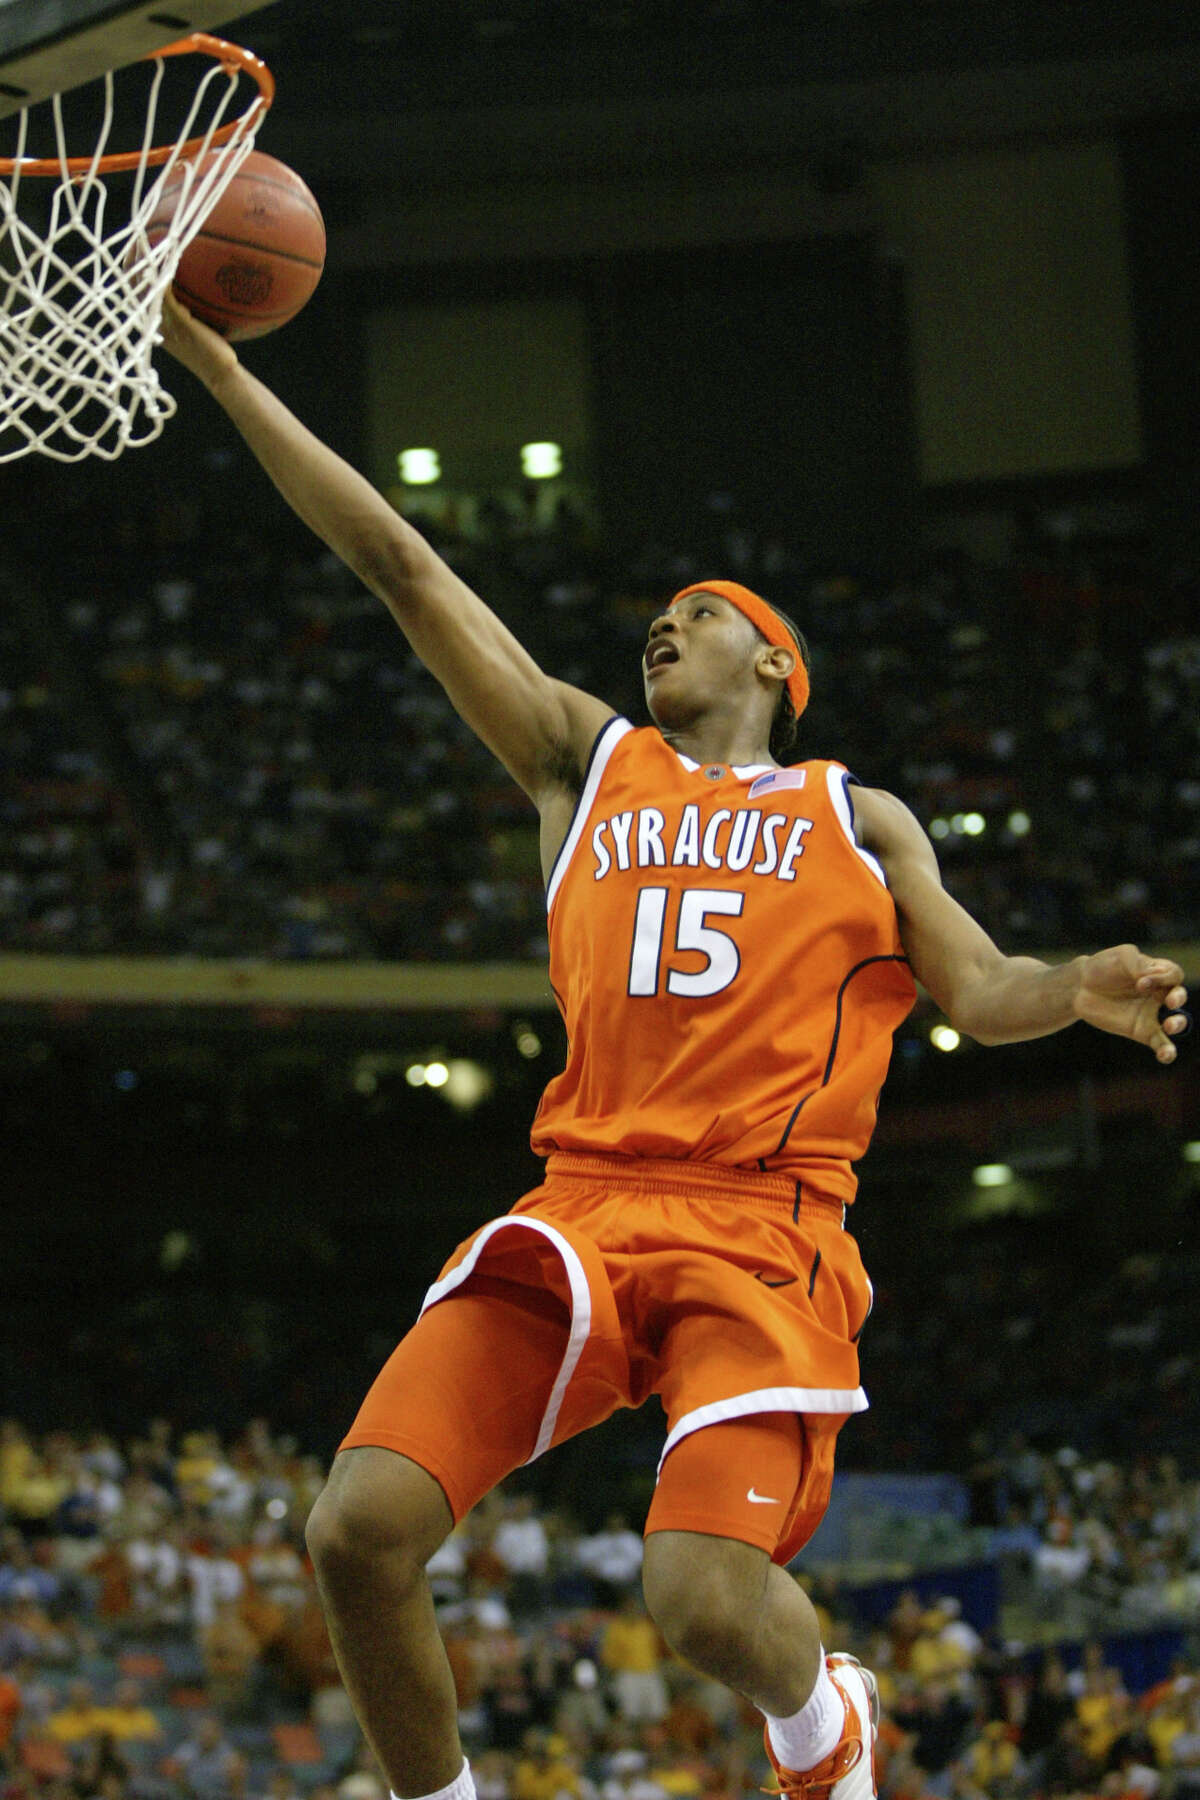 FILE - In this April 5, 2003, file photo, Syracuse's Carmelo Anthony puts up a layup in the closing seconds of the Orangemen's 95-84 win over Texas in the semifinals of the Final Four in New Orleans. Anthony averaged 26.5 points and 12 rebounds per game in the 2003 Final Four. The only first-year players ever to be named the most outstanding player of a Final Four are Anthony Davis, Carmelo Anthony and Dukea€™s Tyus Jones in 2015. (AP Photo/Michael Conroy, File)